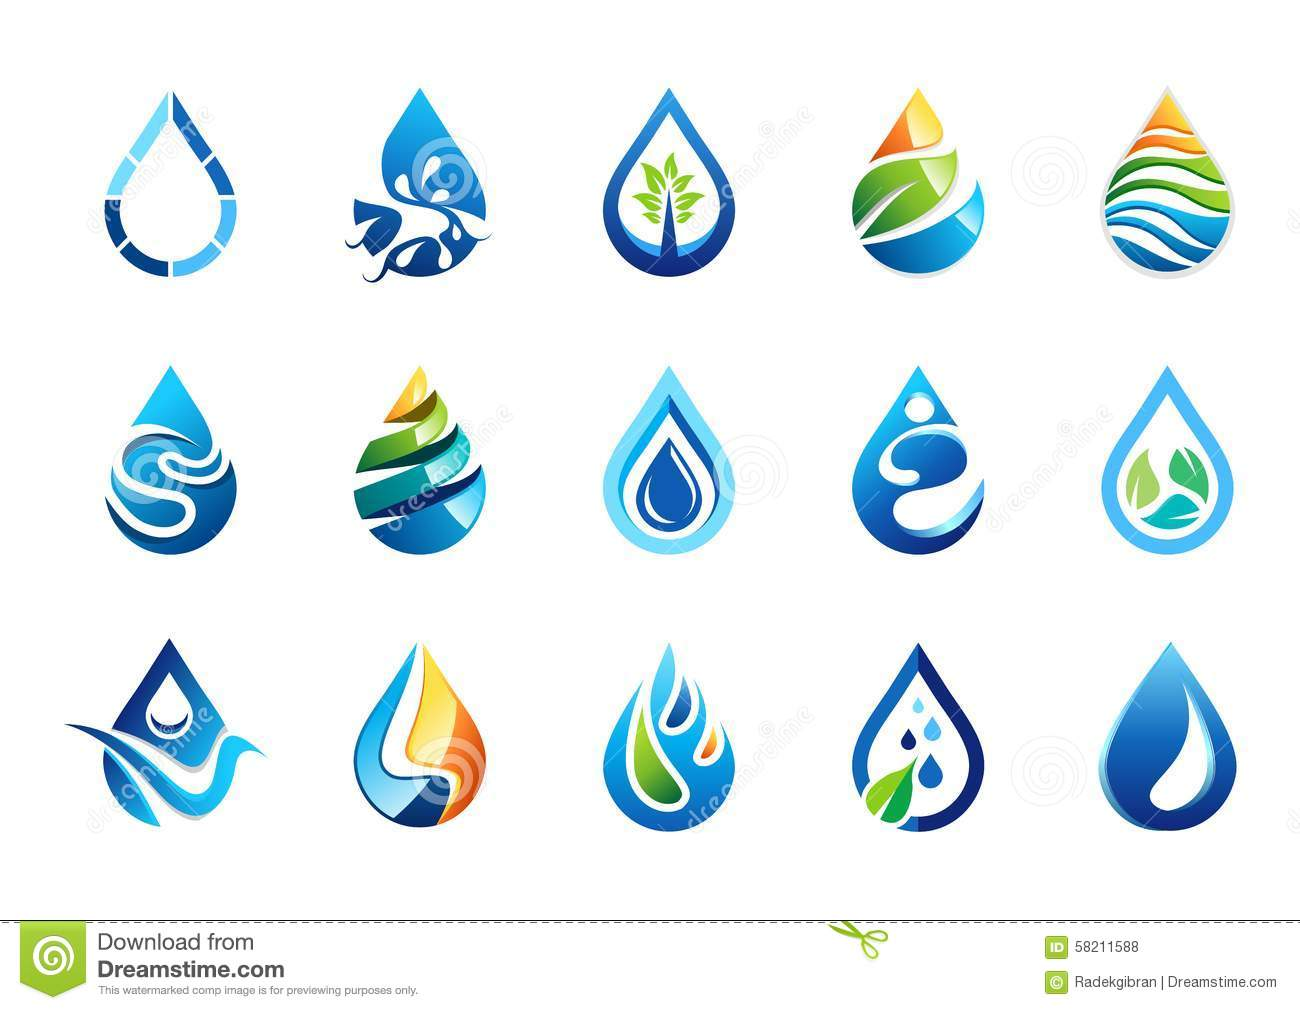 Water nature clipart.